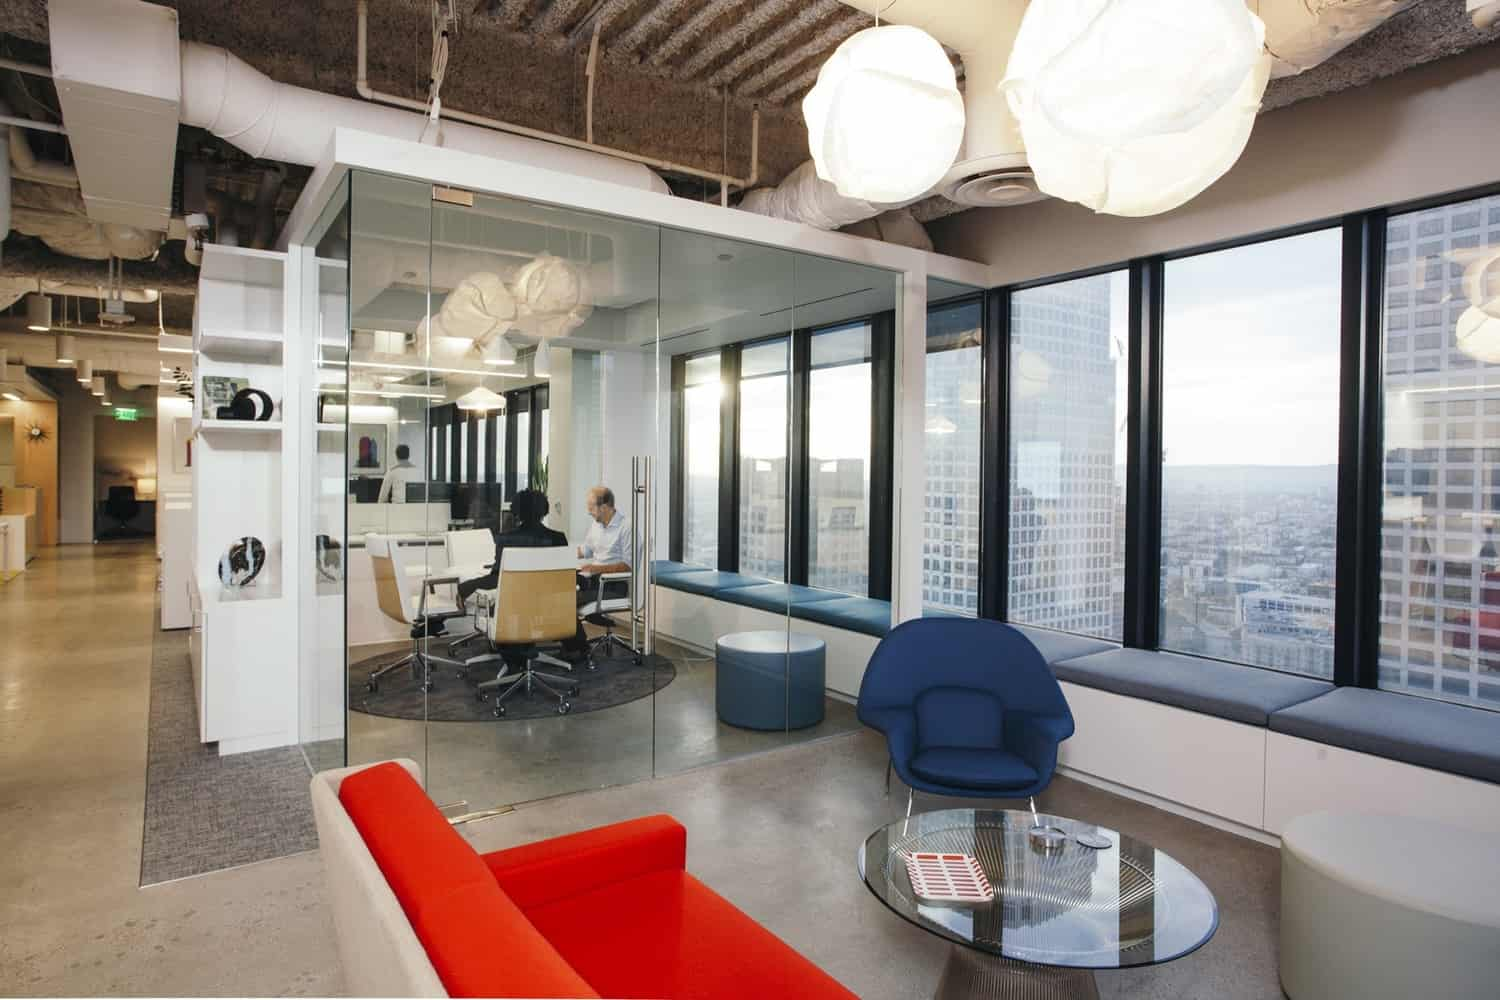 Spacious and Modern Offices with a Marked Industrial Style